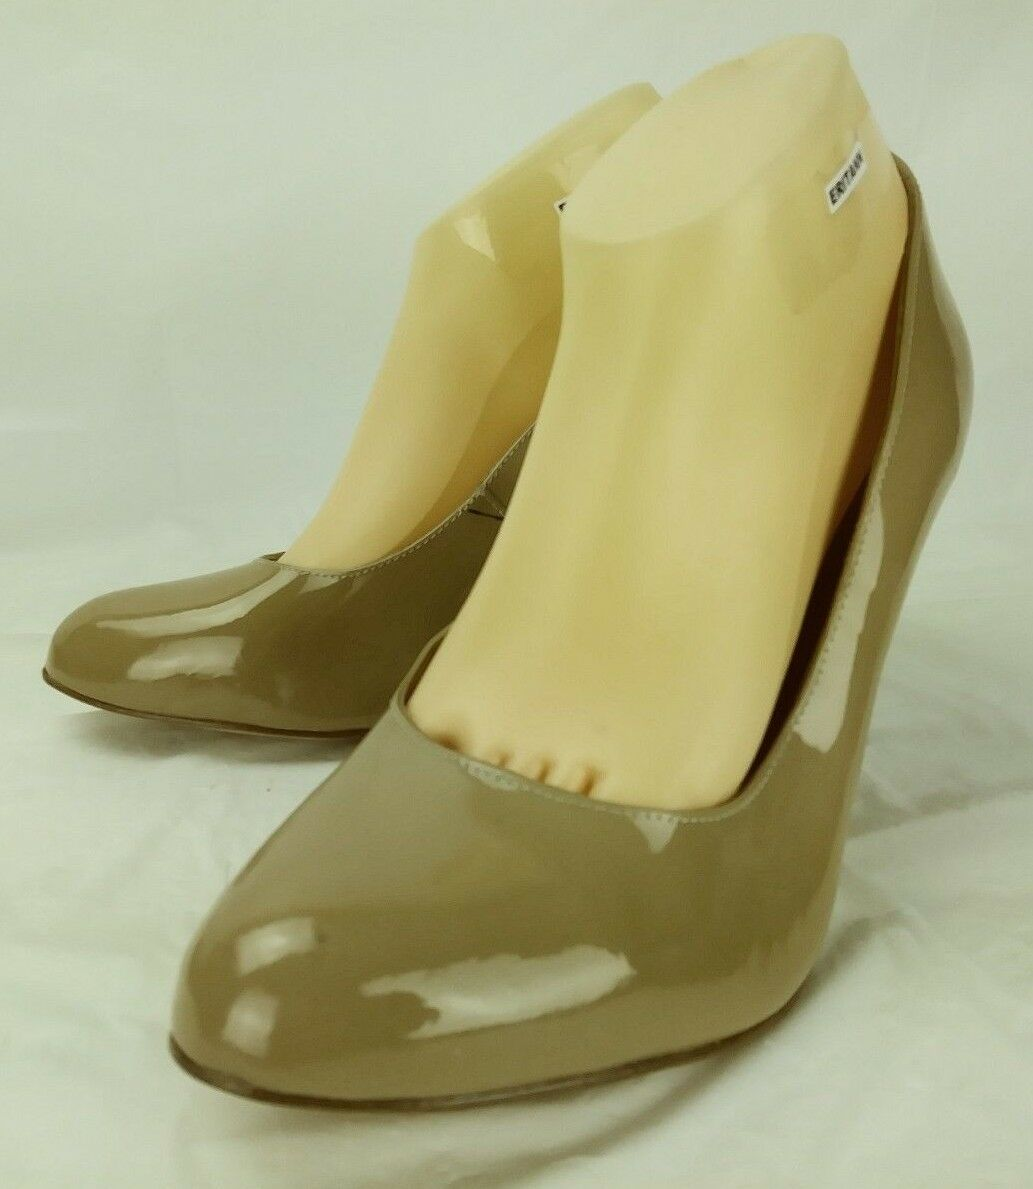 Corso Como Womens Shoes Heels US 11 M Beige Patent Patent Beige Leather Slip-on 182 a49c6f